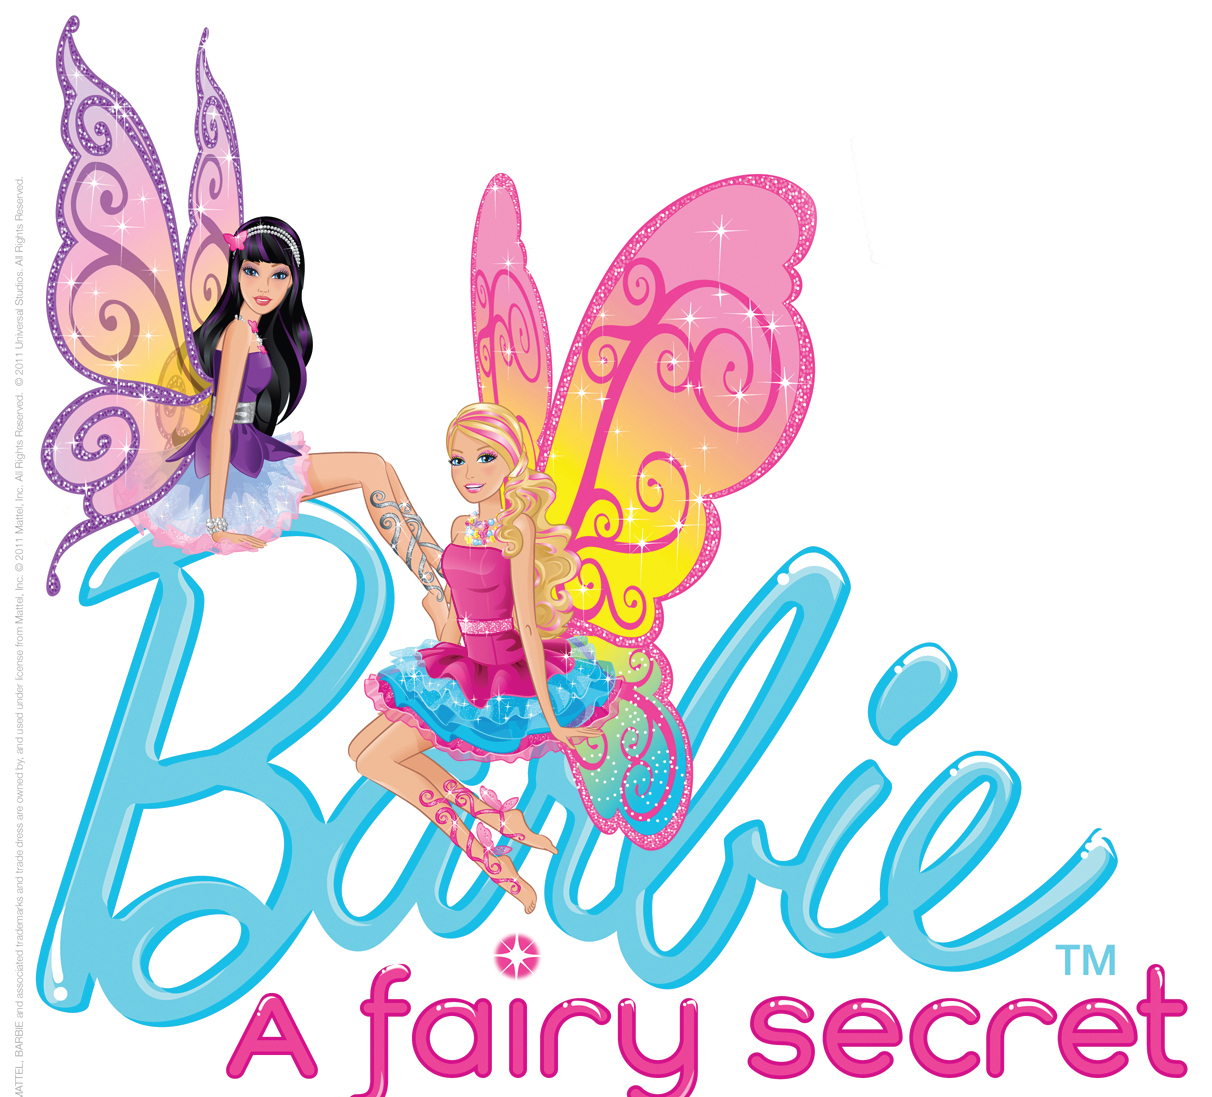 Barbie+a+fairy+secret+barbie+and+raquelle